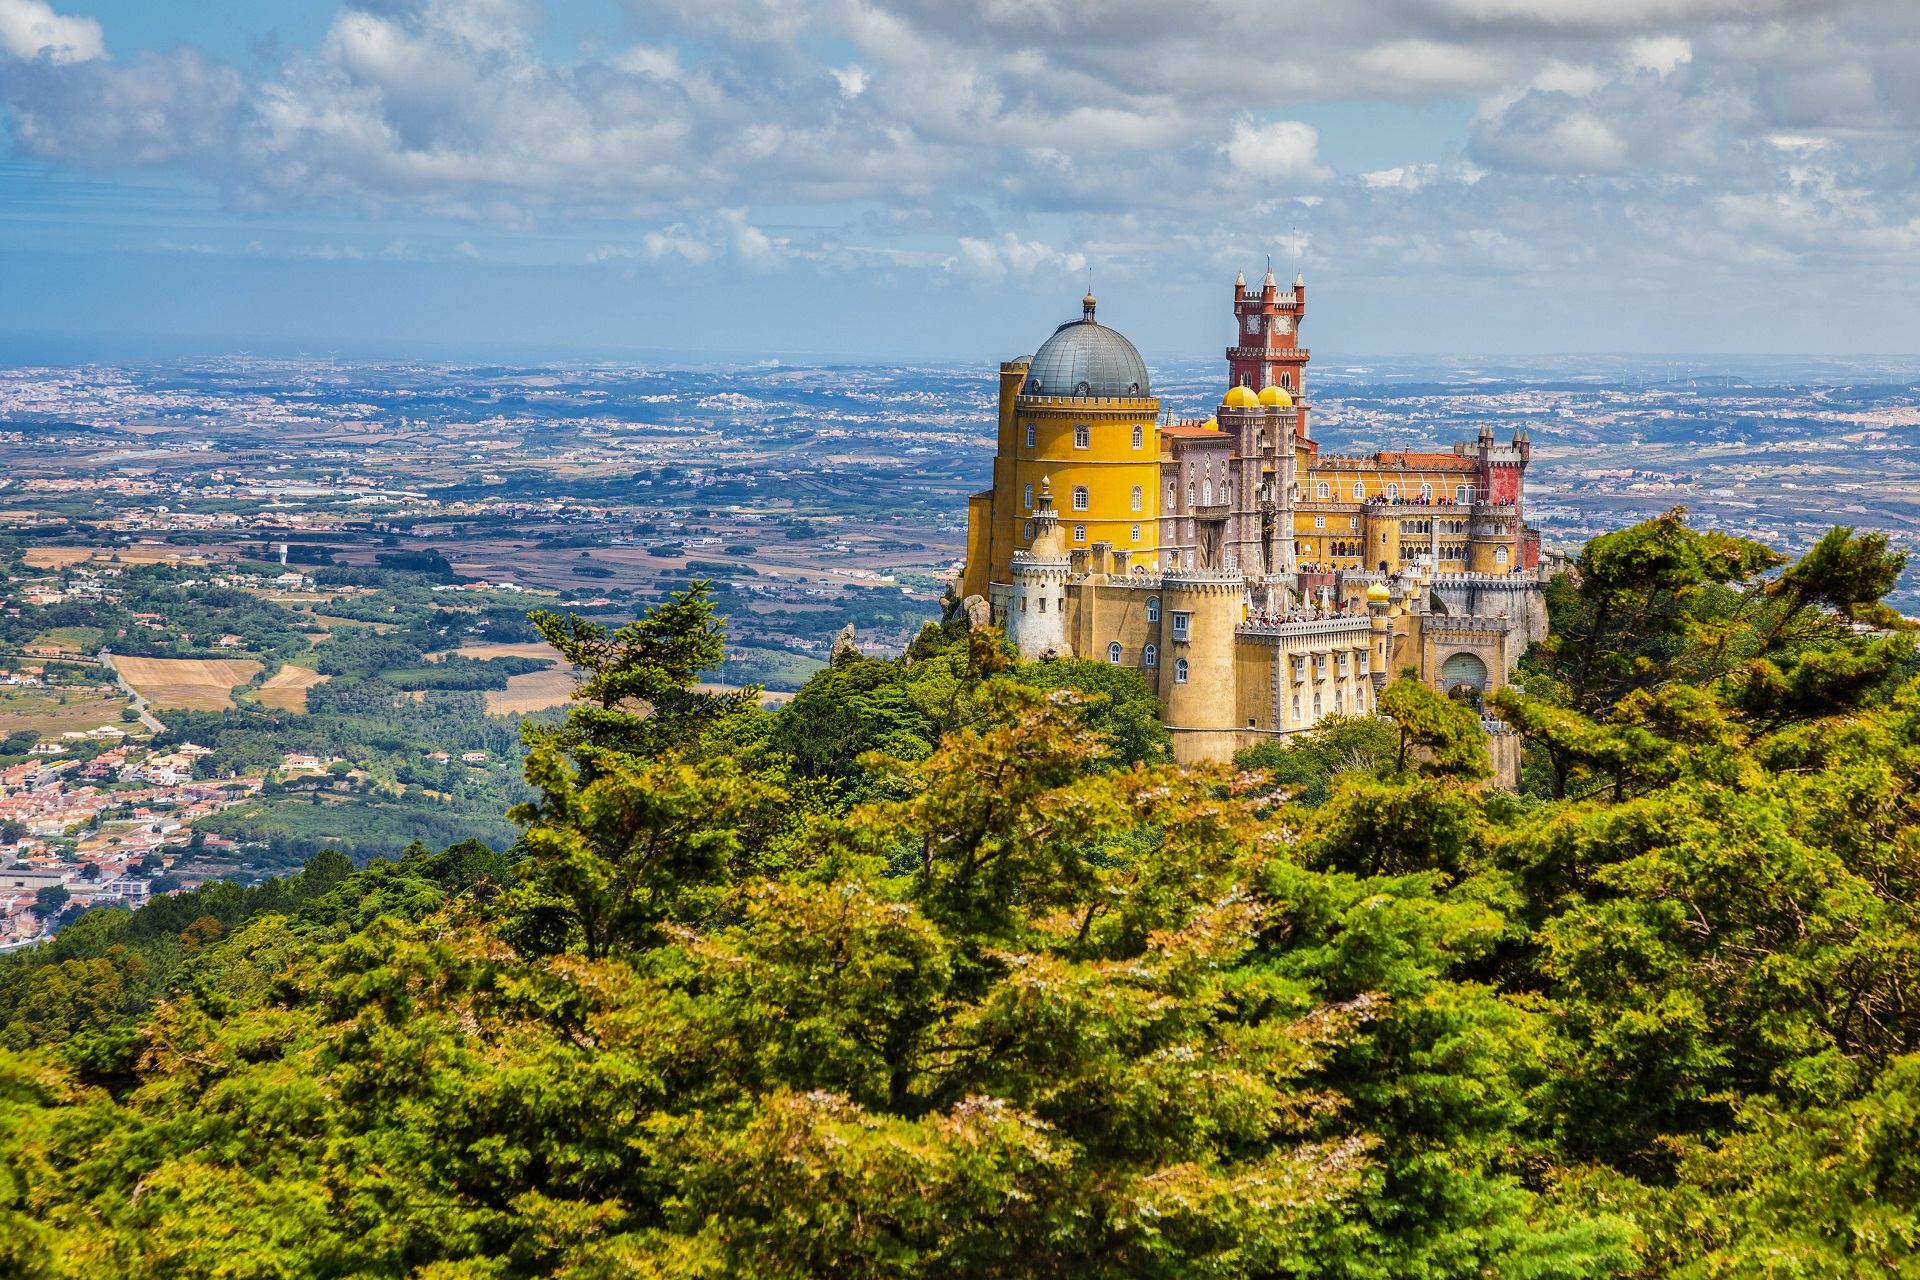 Panorama des Pena National Palace in Sintra